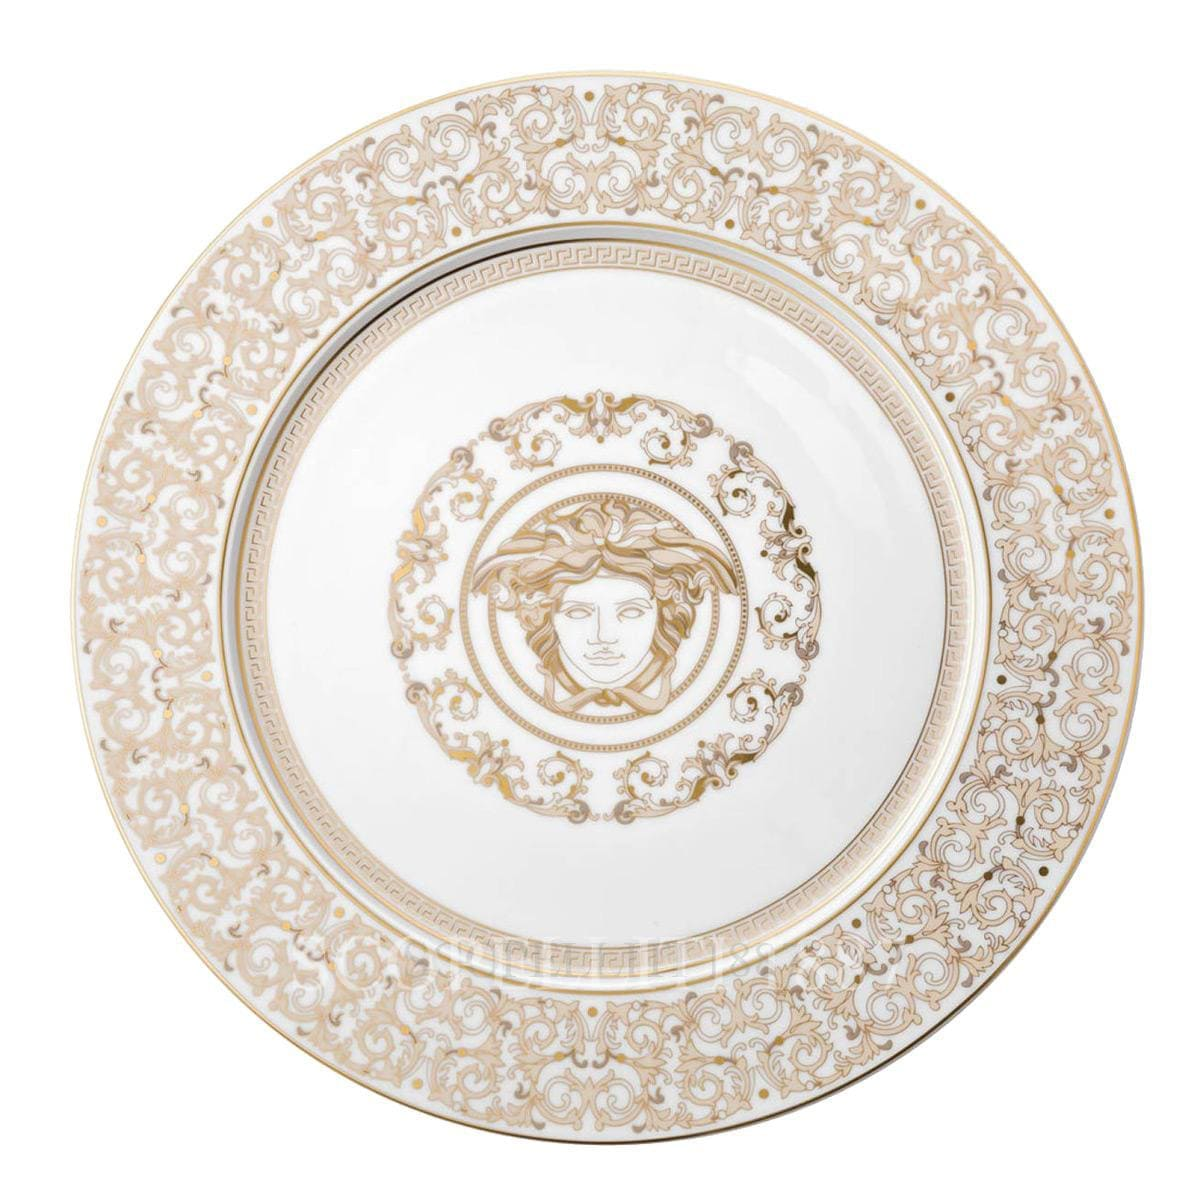 Versace Medusa Gala Service Plate 30 cm by Rosenthal